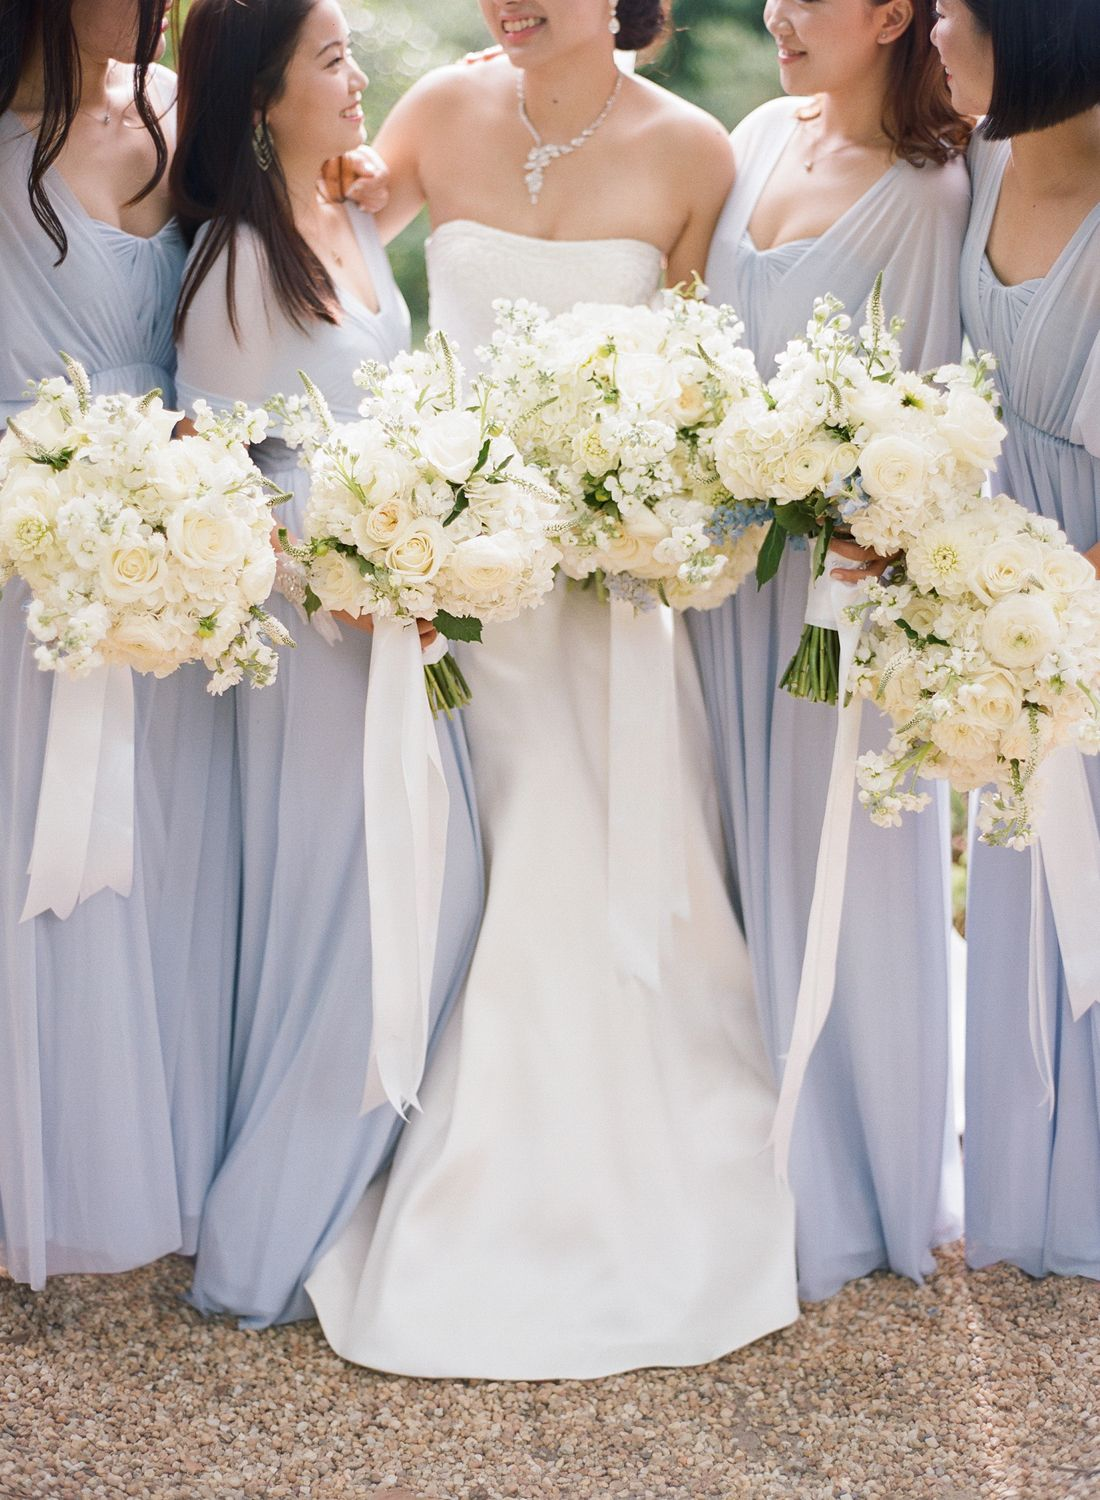 Periwinkle bridesmaids dresses aw weddings pinterest periwinkle bridesmaids dresses ombrellifo Image collections